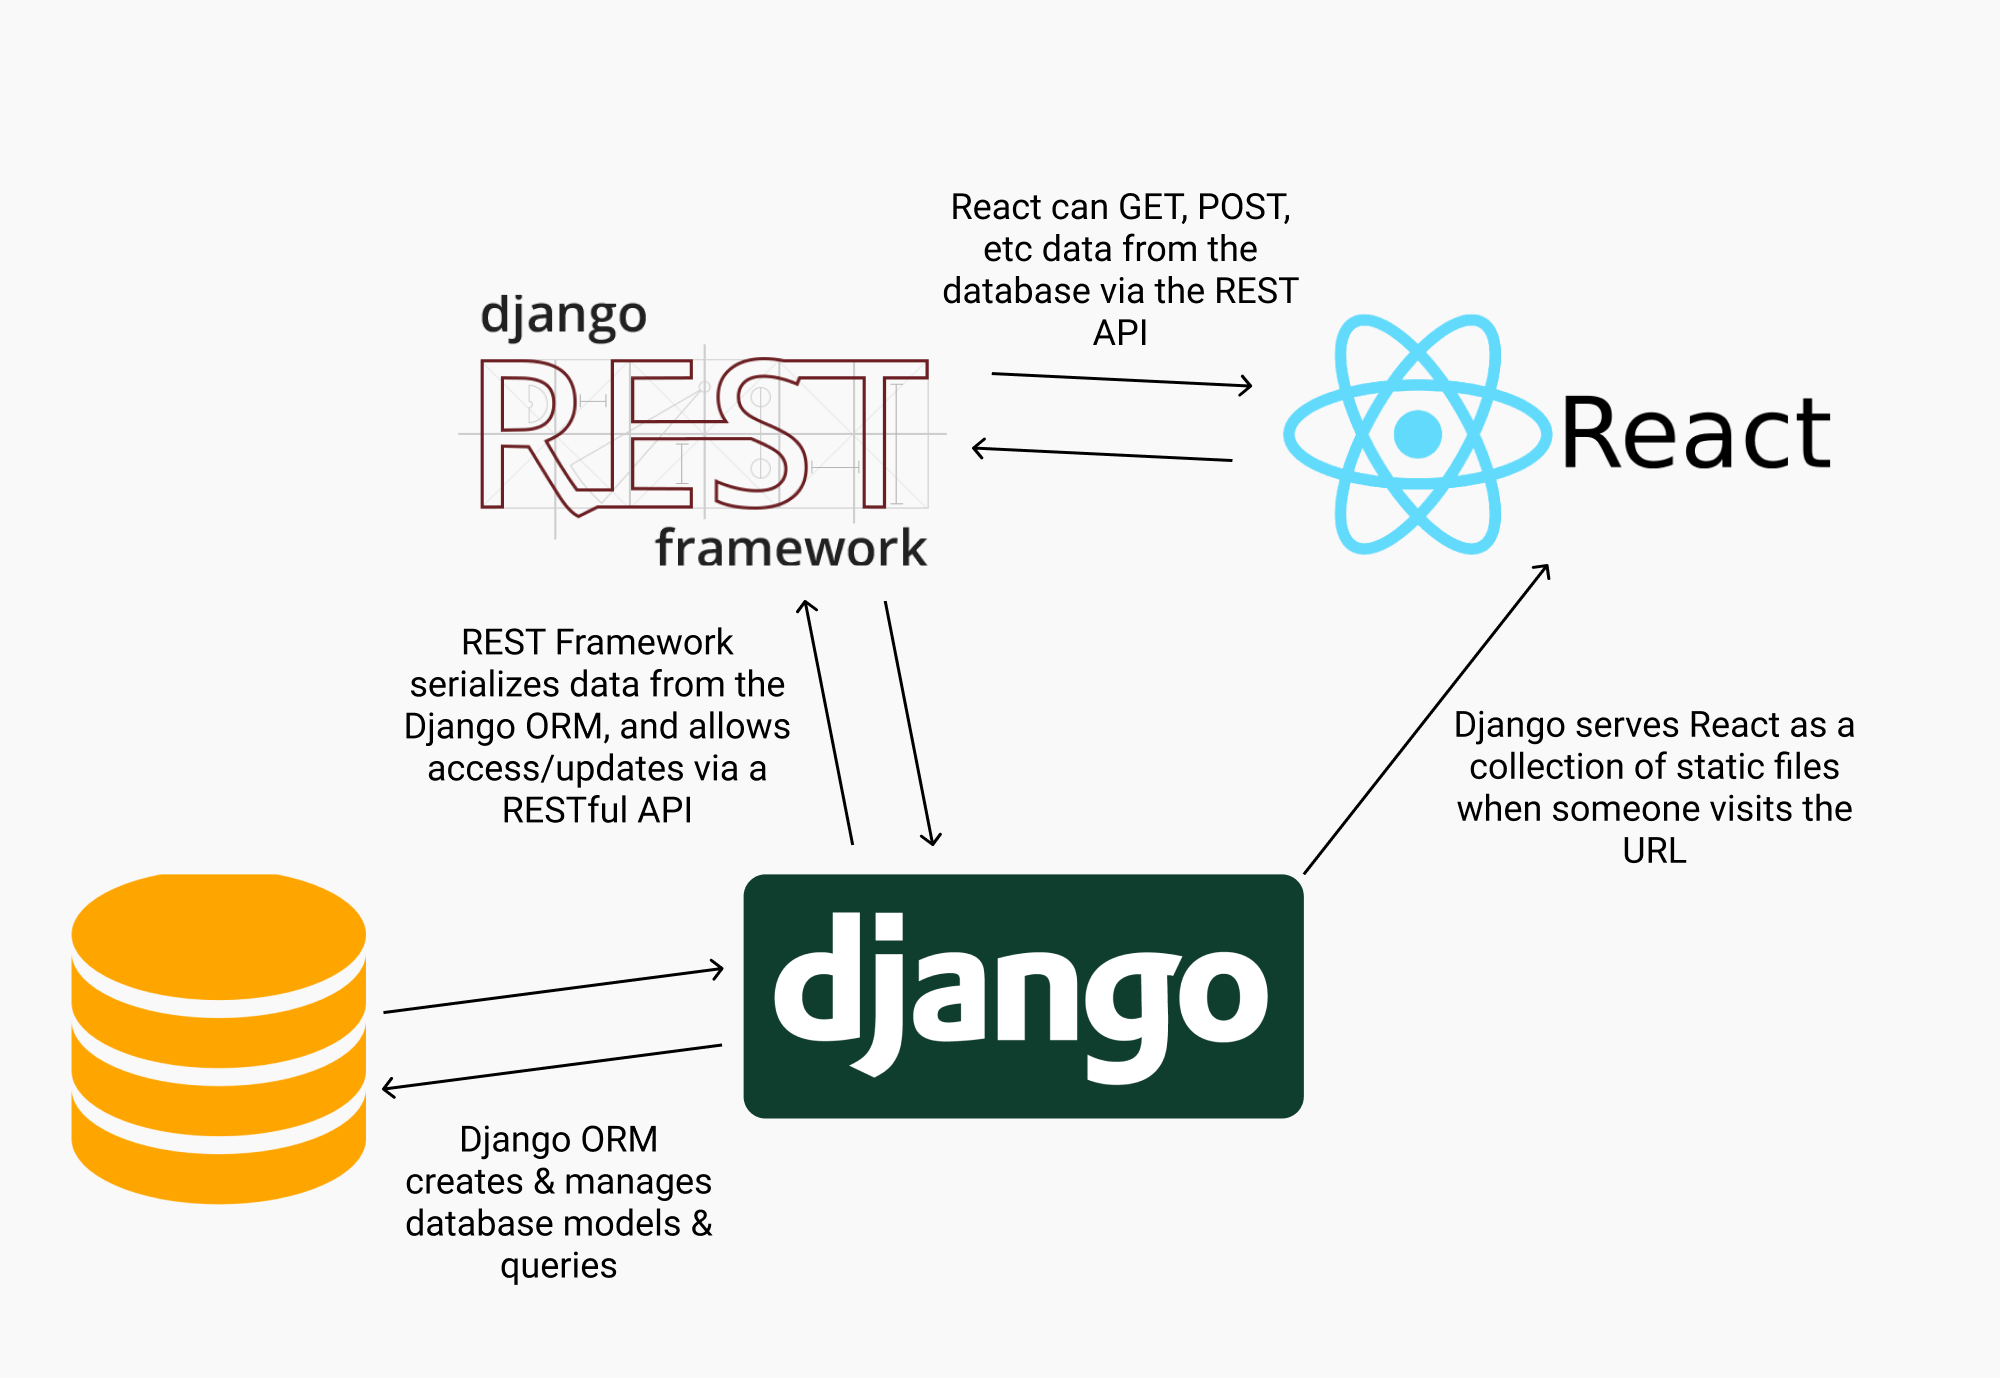 A picture of a development stack feature Django and React